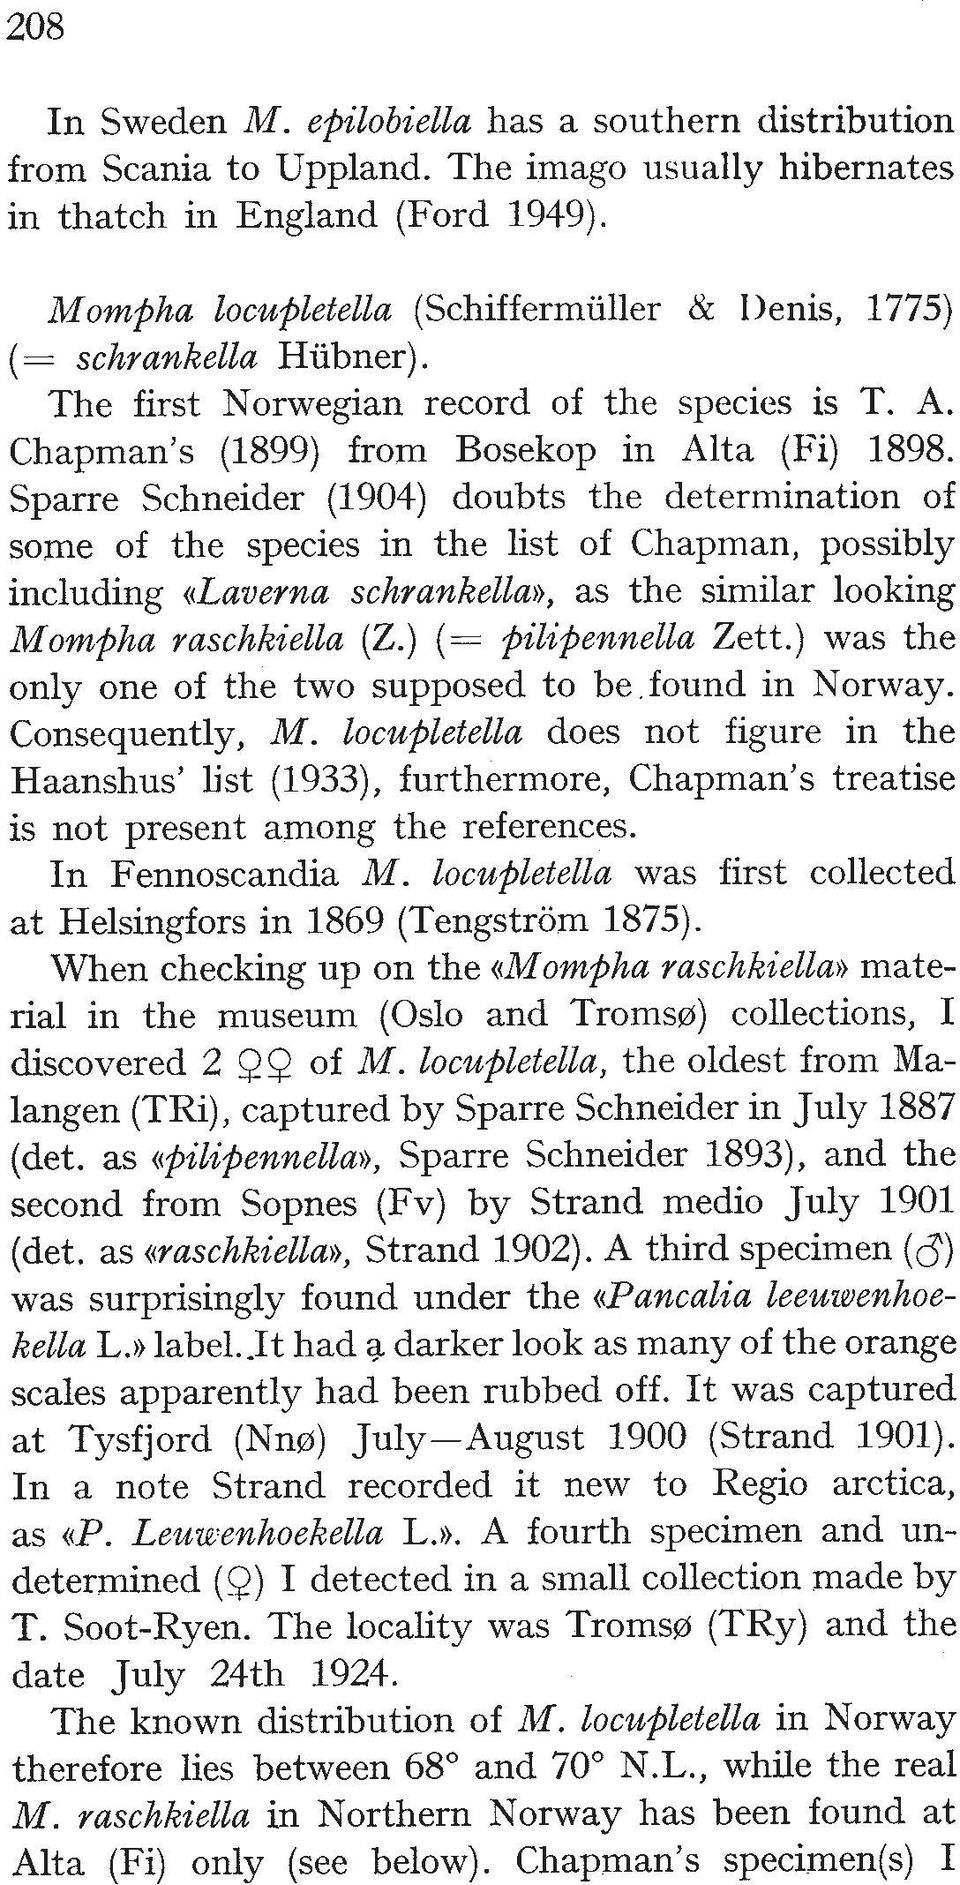 Sparre Schneider (1904) doubts the determination of some of the species in the list of Chapman, possibly including ((Lavernu schrankellao, as the similar looking Mompha raschkiella (2.